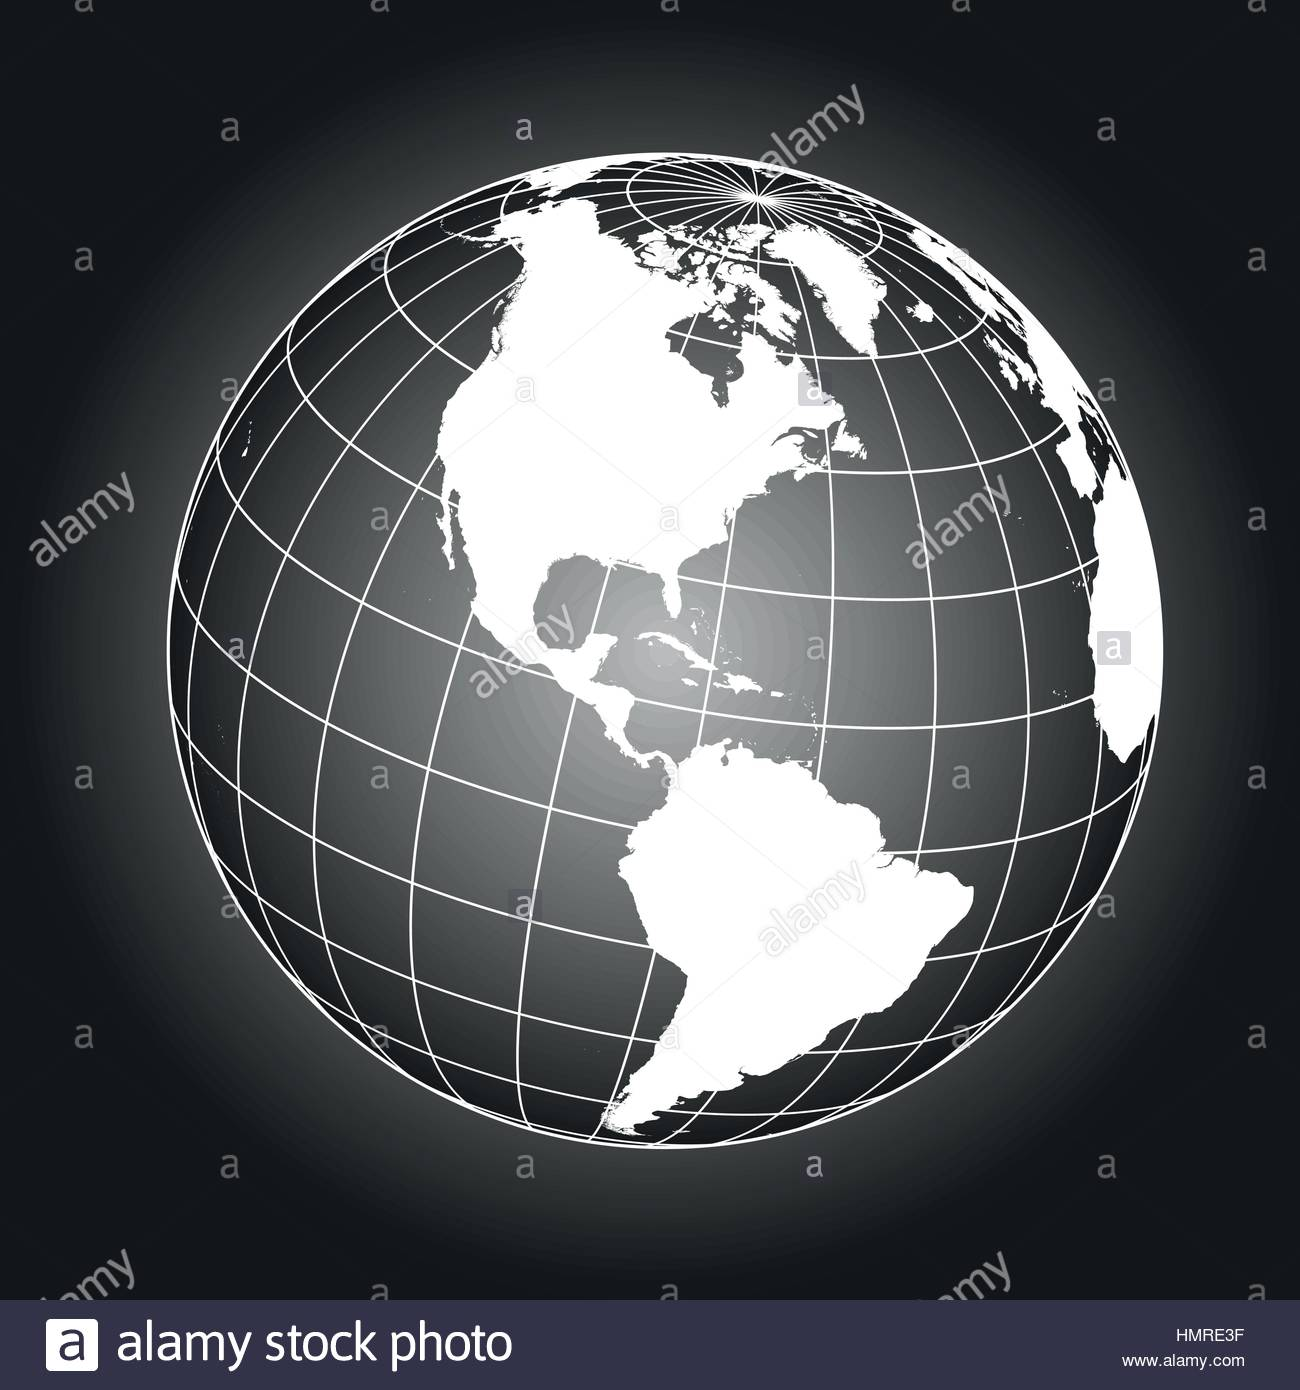 North america map europe greenland north pole south america north america map europe greenland north pole south america earth globe worldmap elements of this image furnished by nasa gumiabroncs Choice Image